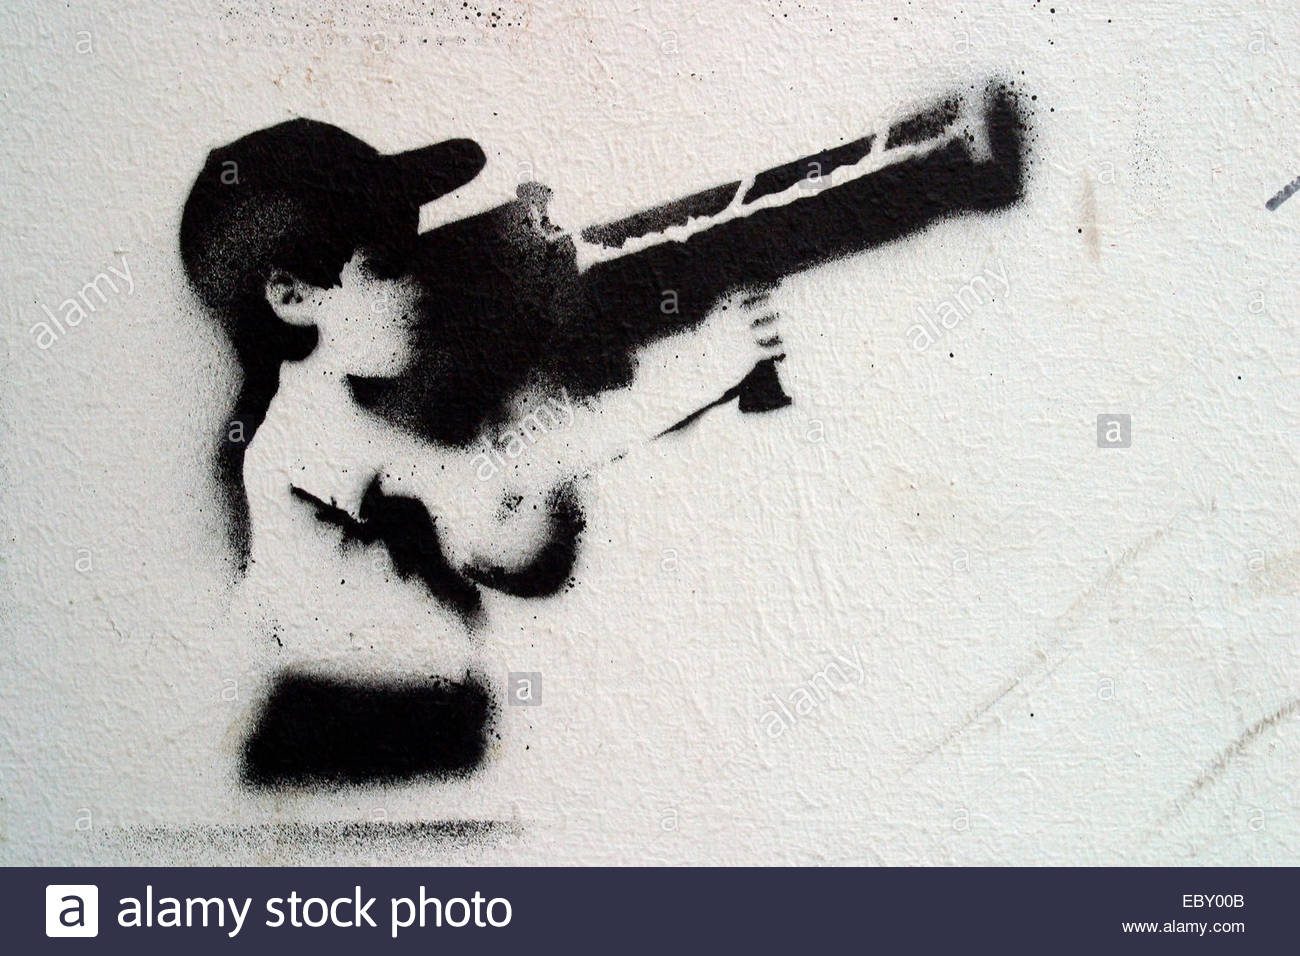 child with bazooka, stencil graffiti - Stock Image